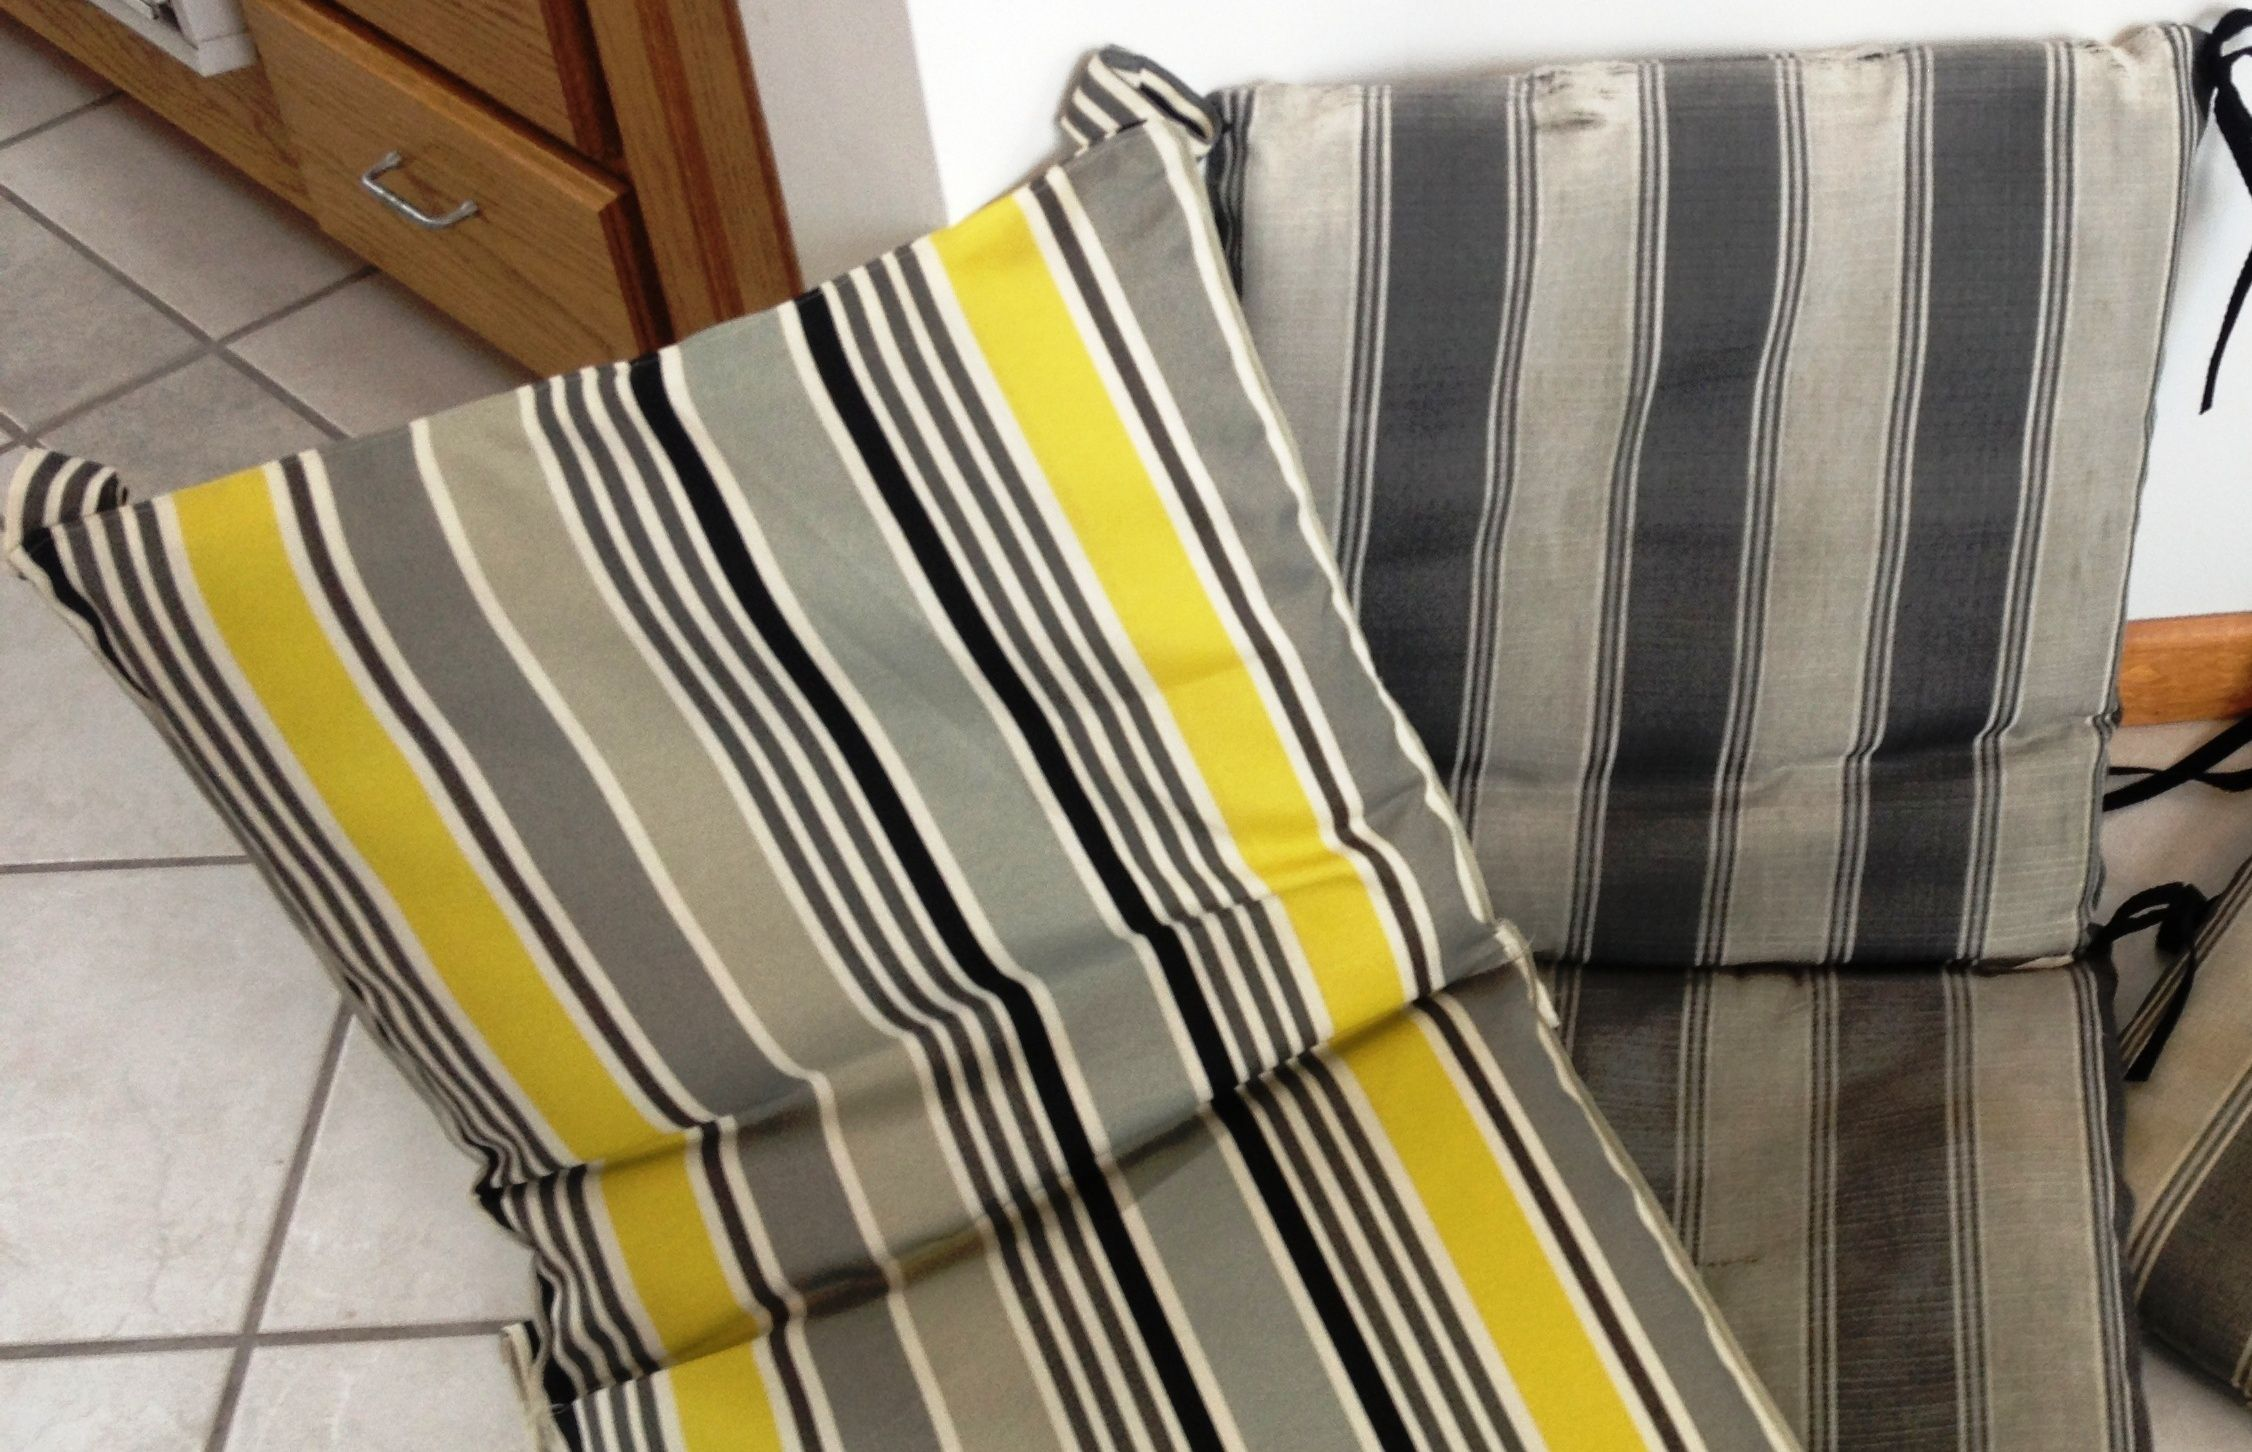 recovering lawn chairs big and tall office without arms how to recover chair cushions creative ideas